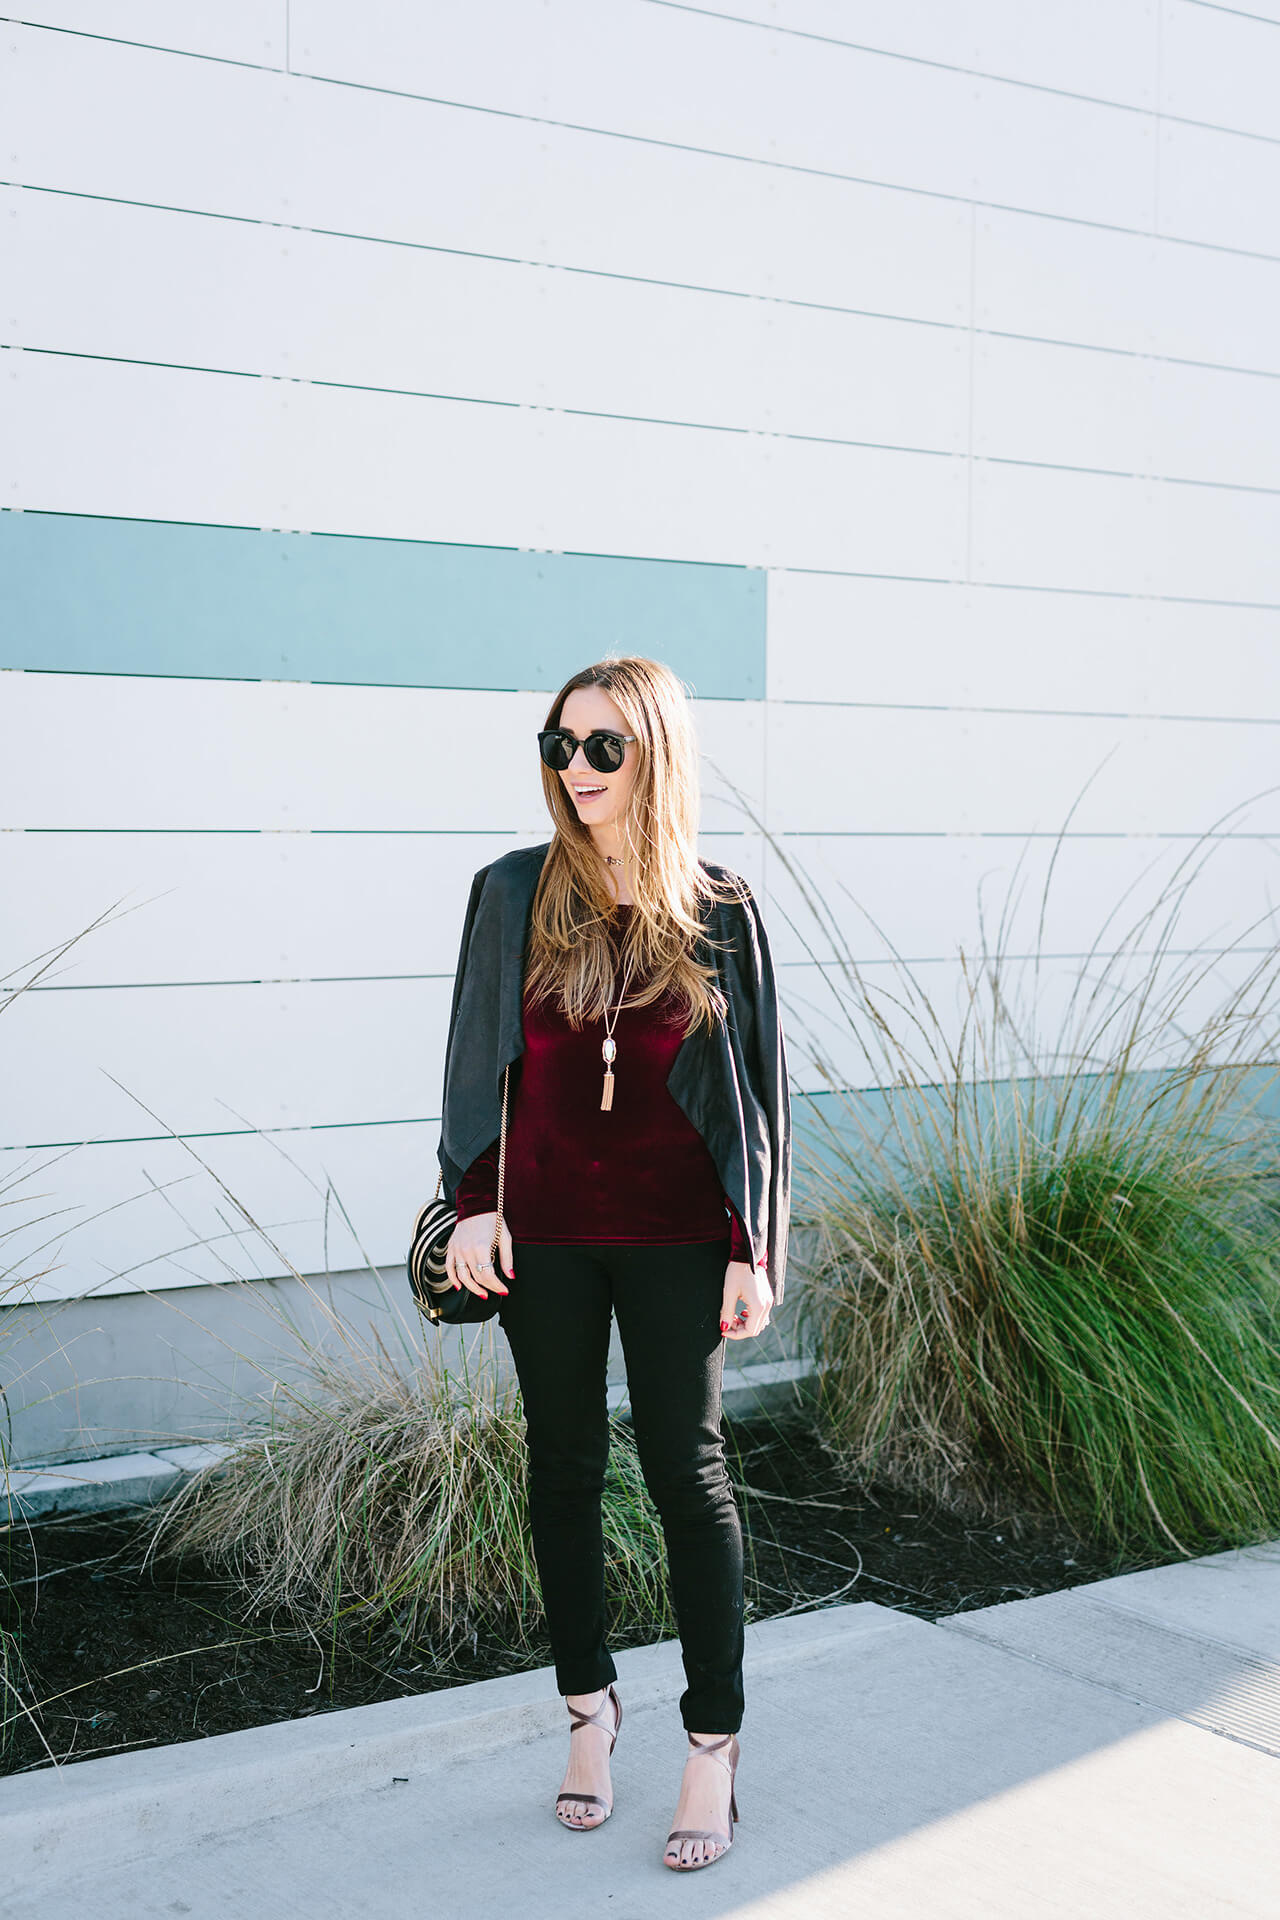 styling a velvet top with black pants for a casual holiday outfit